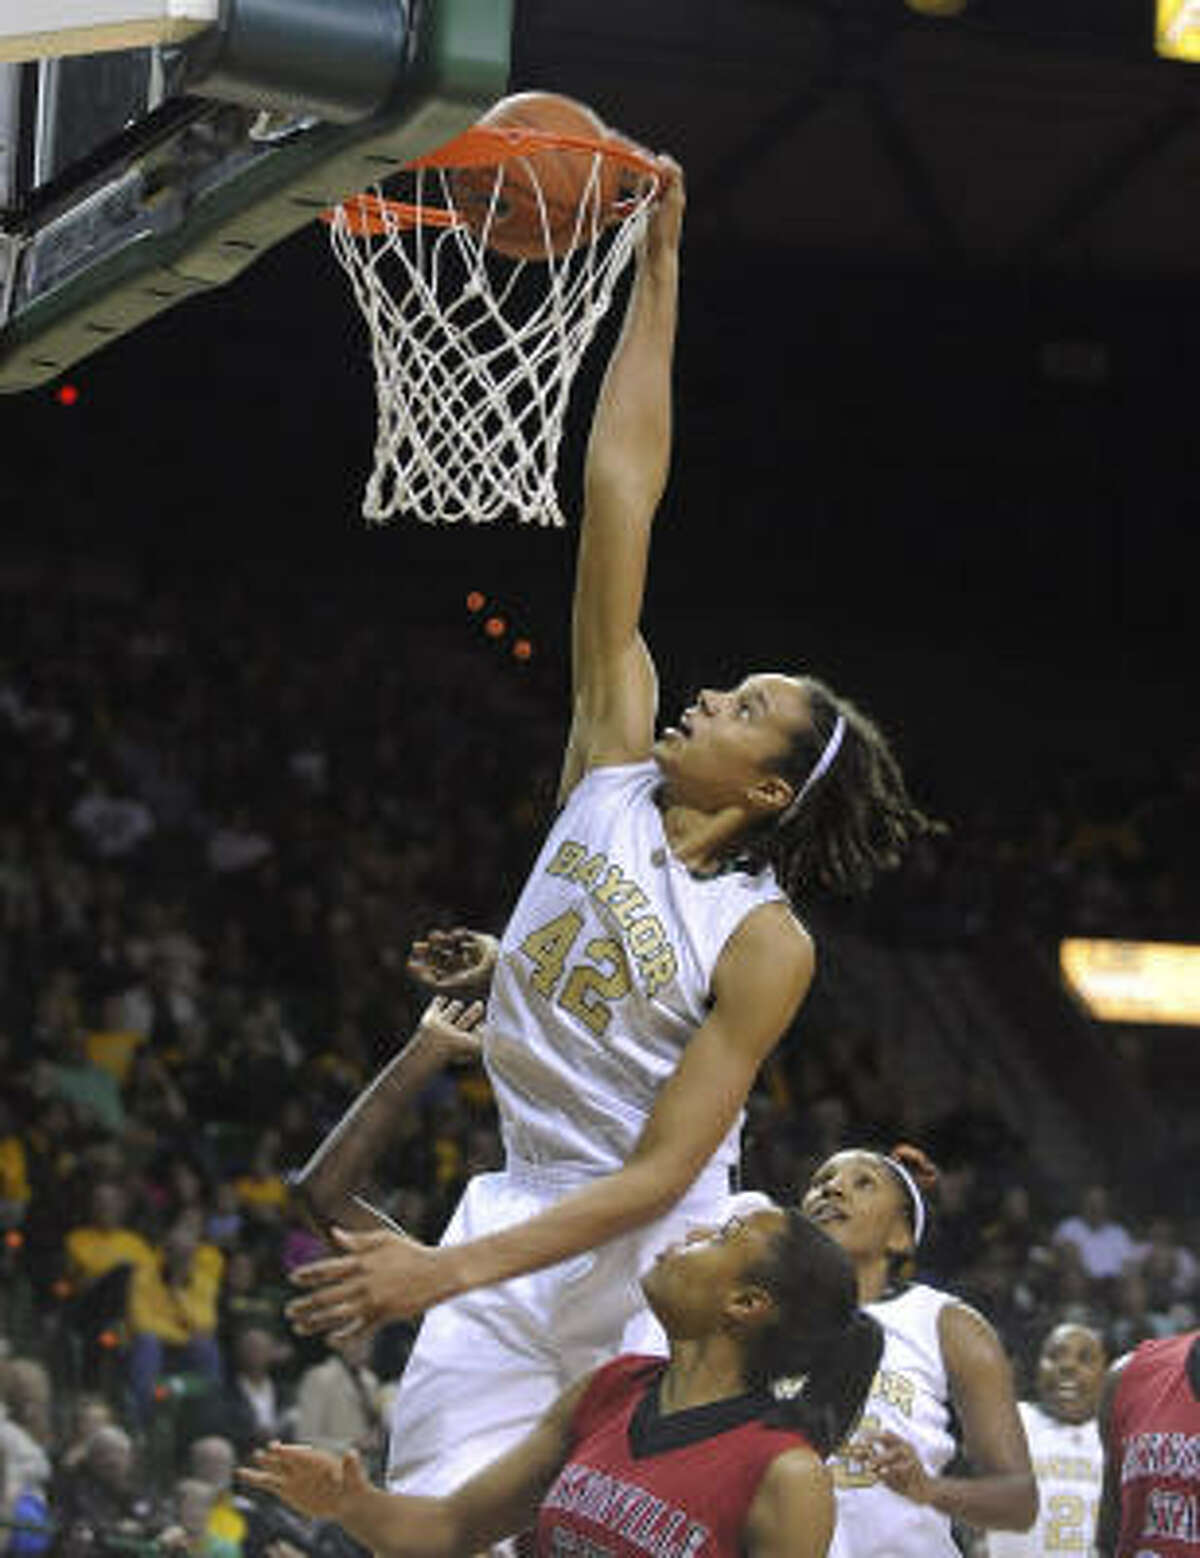 2009: Brittney Griner, Nimitz Helped lead Baylor to the NCAA women's Final Four this season, was the Big 12 Freshman of the Year, set the NCAA single-season record for blocked shots (223).